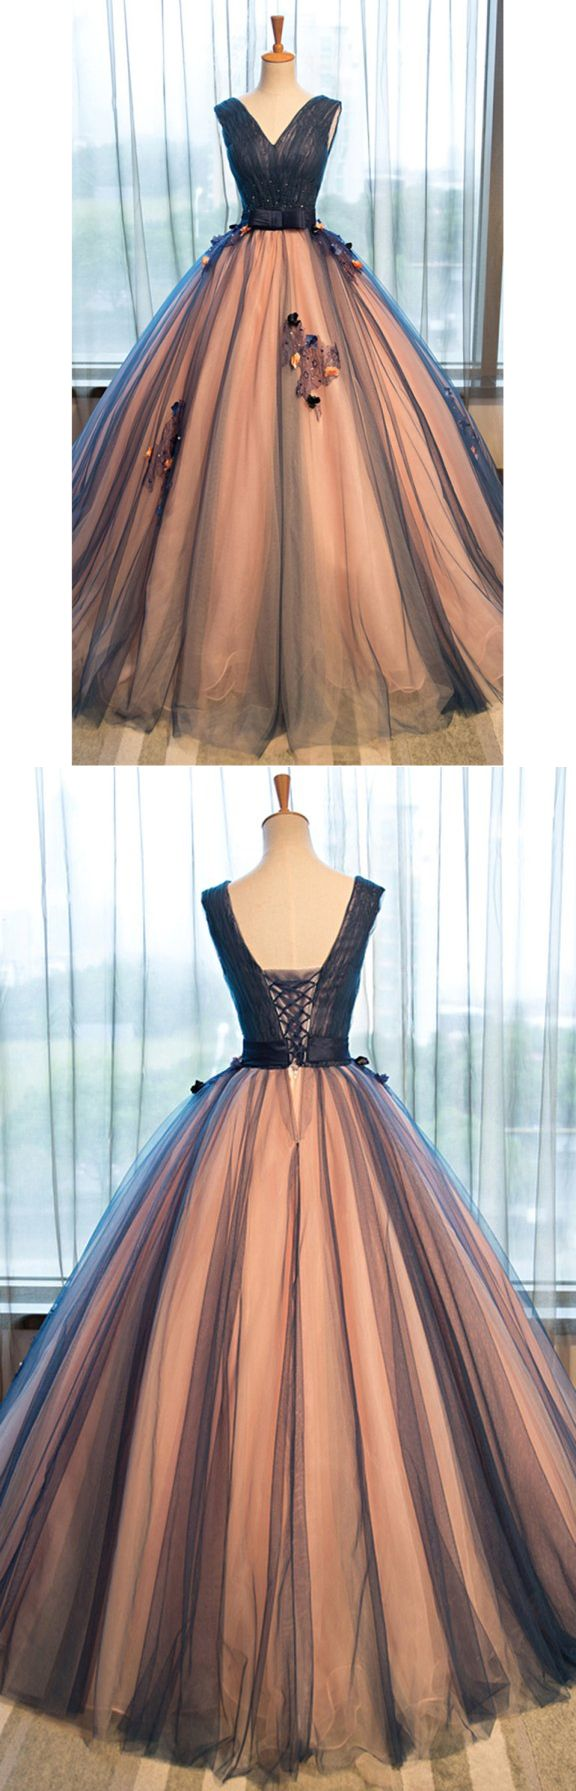 Chic ball gown prom dresses appliques vneck laceup floorlength